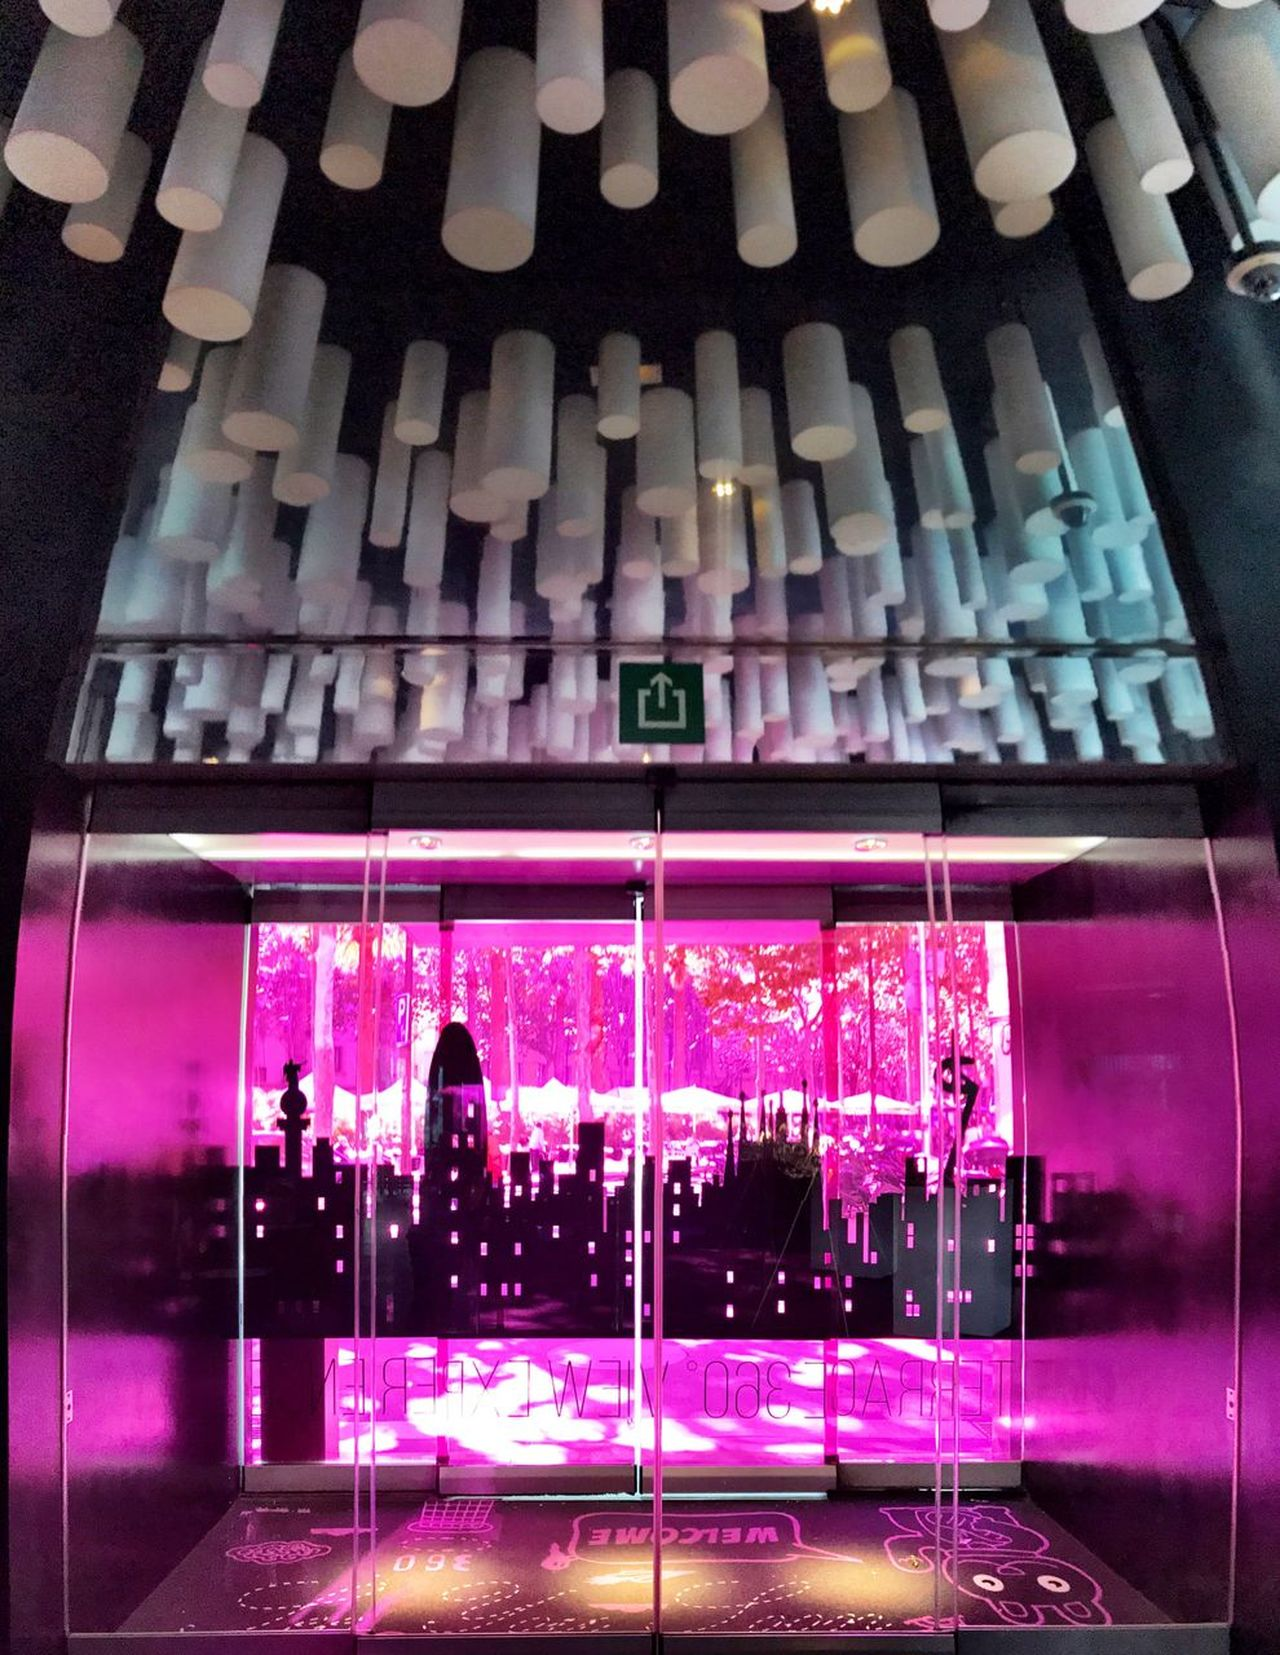 Modern Shotoniphone7 No People Illuminated Night Indoors  Pink Color Architecture Built Structure Entrance Sliding Door Ceiling Ceiling Design